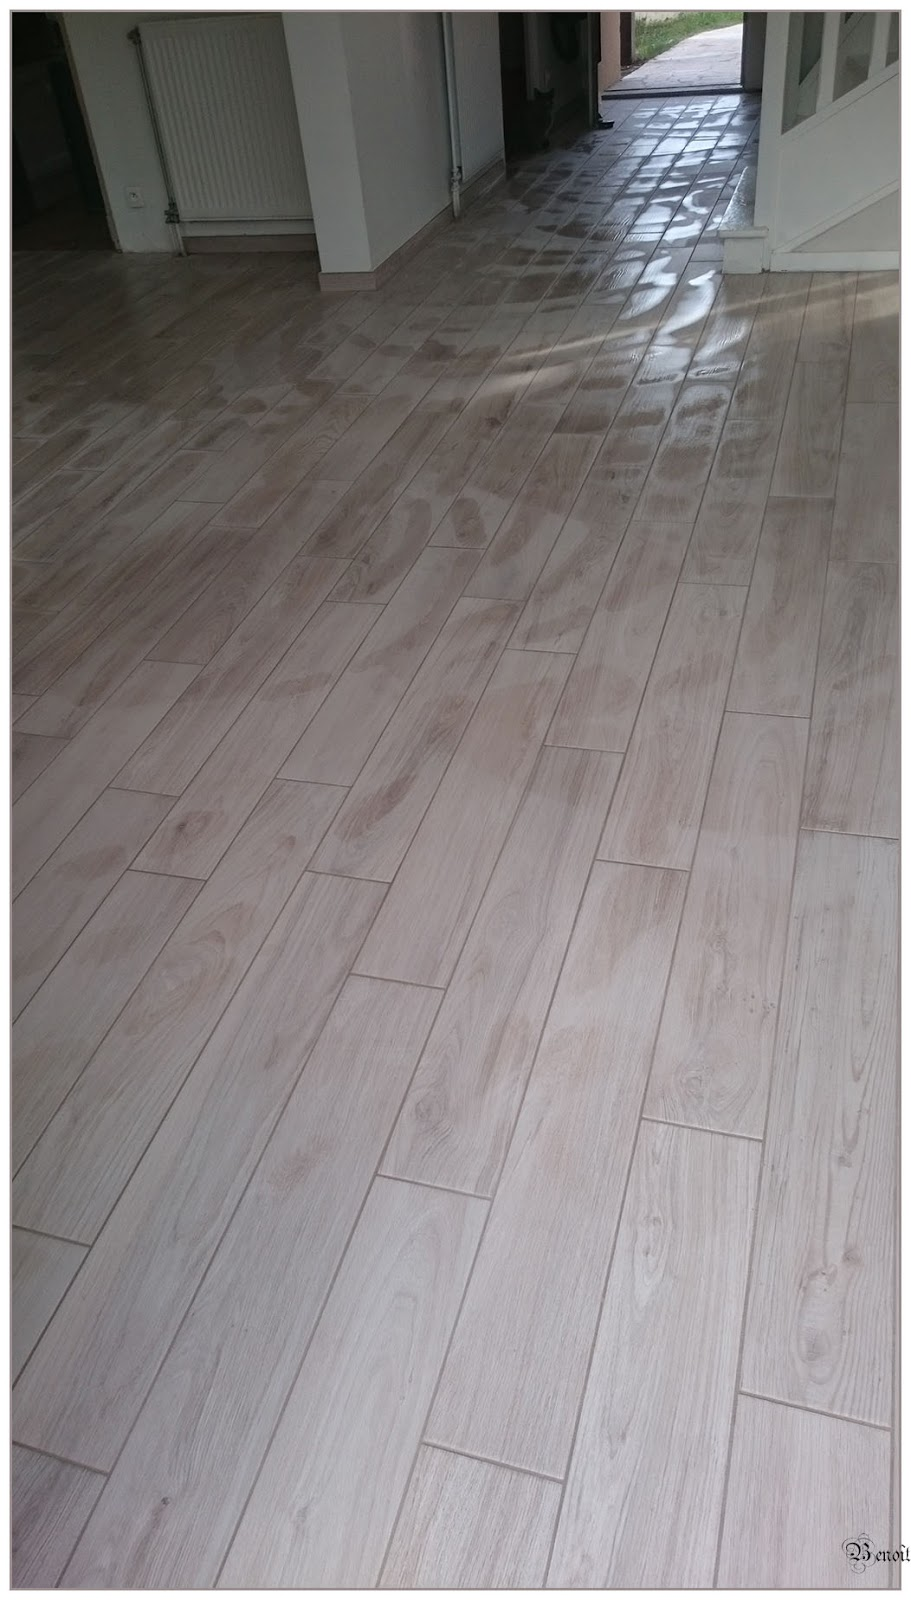 Beno t carrelage carrelage style parquet for Carrelage style